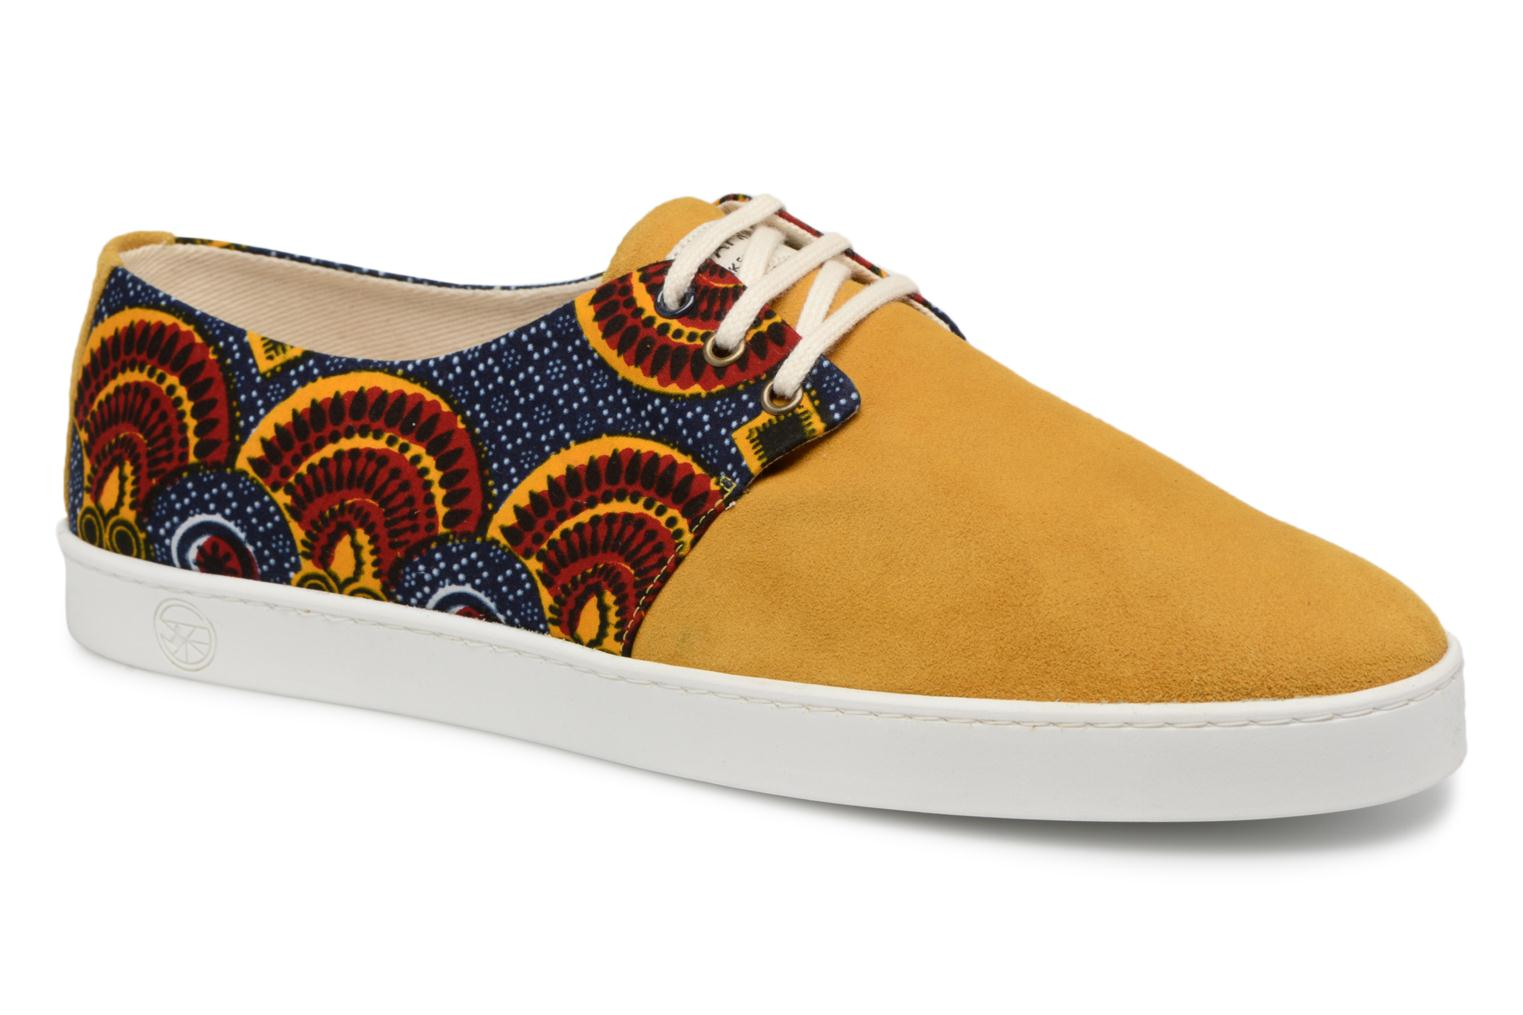 Sneakers Panafrica Multicolor